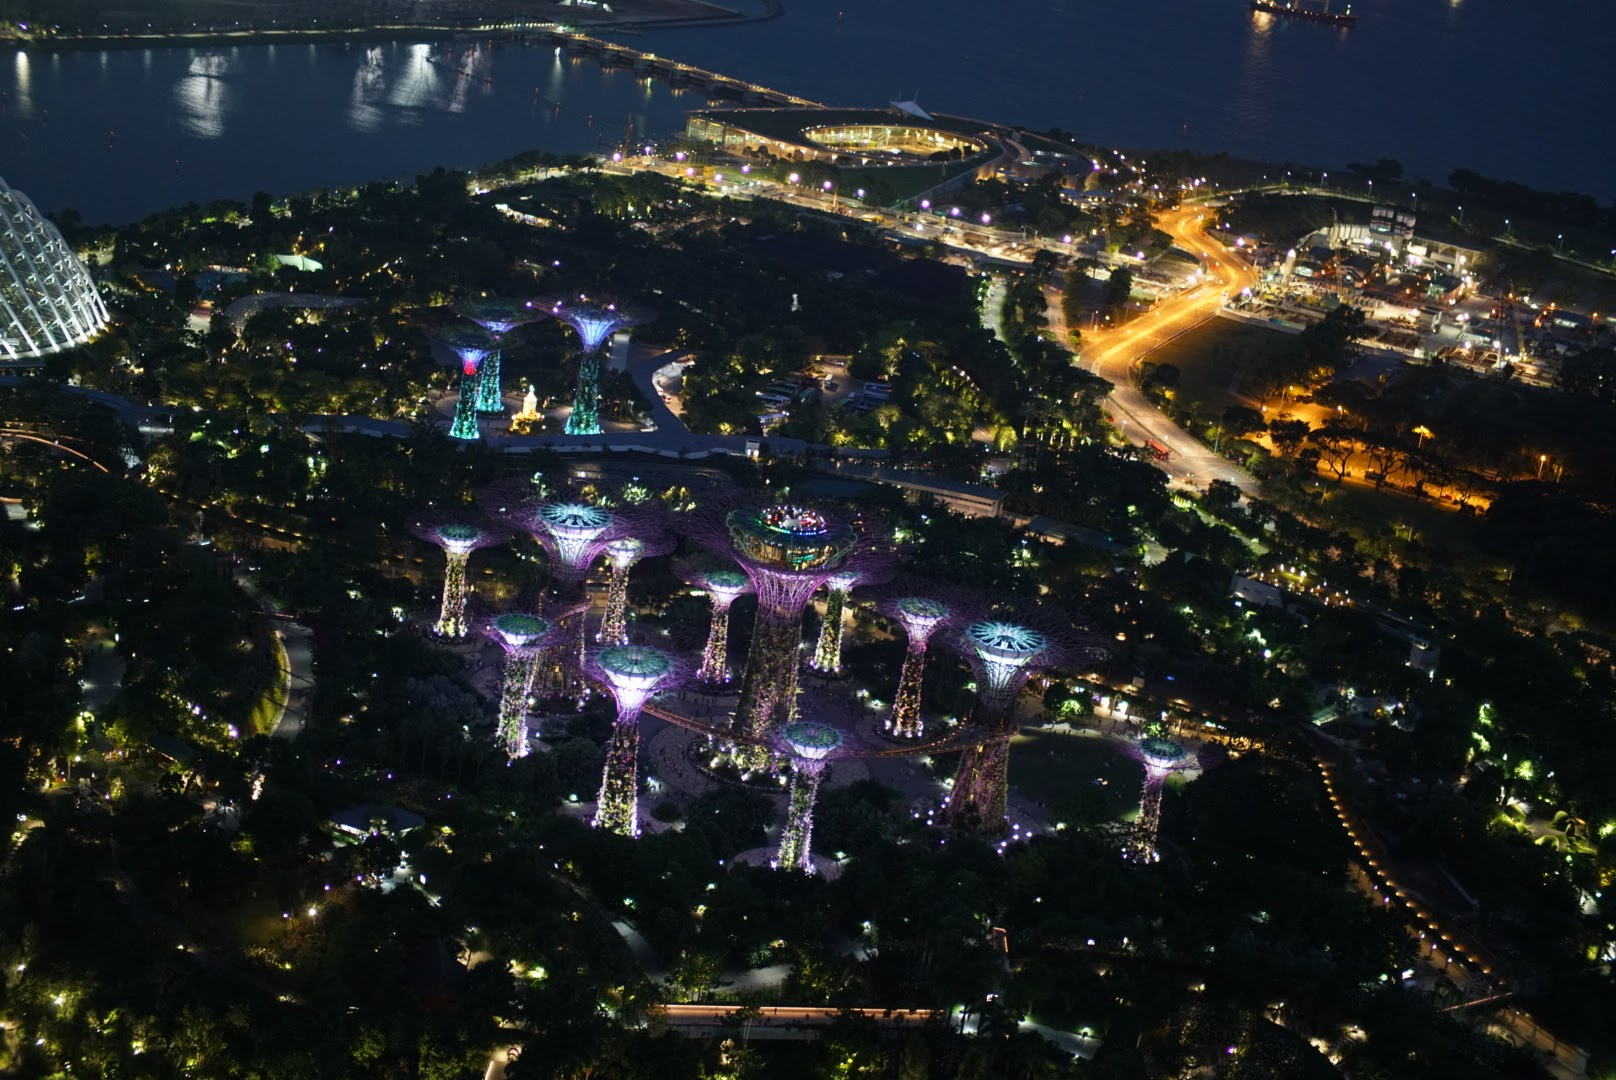 View from Sky57 - aerial view of the Gardens